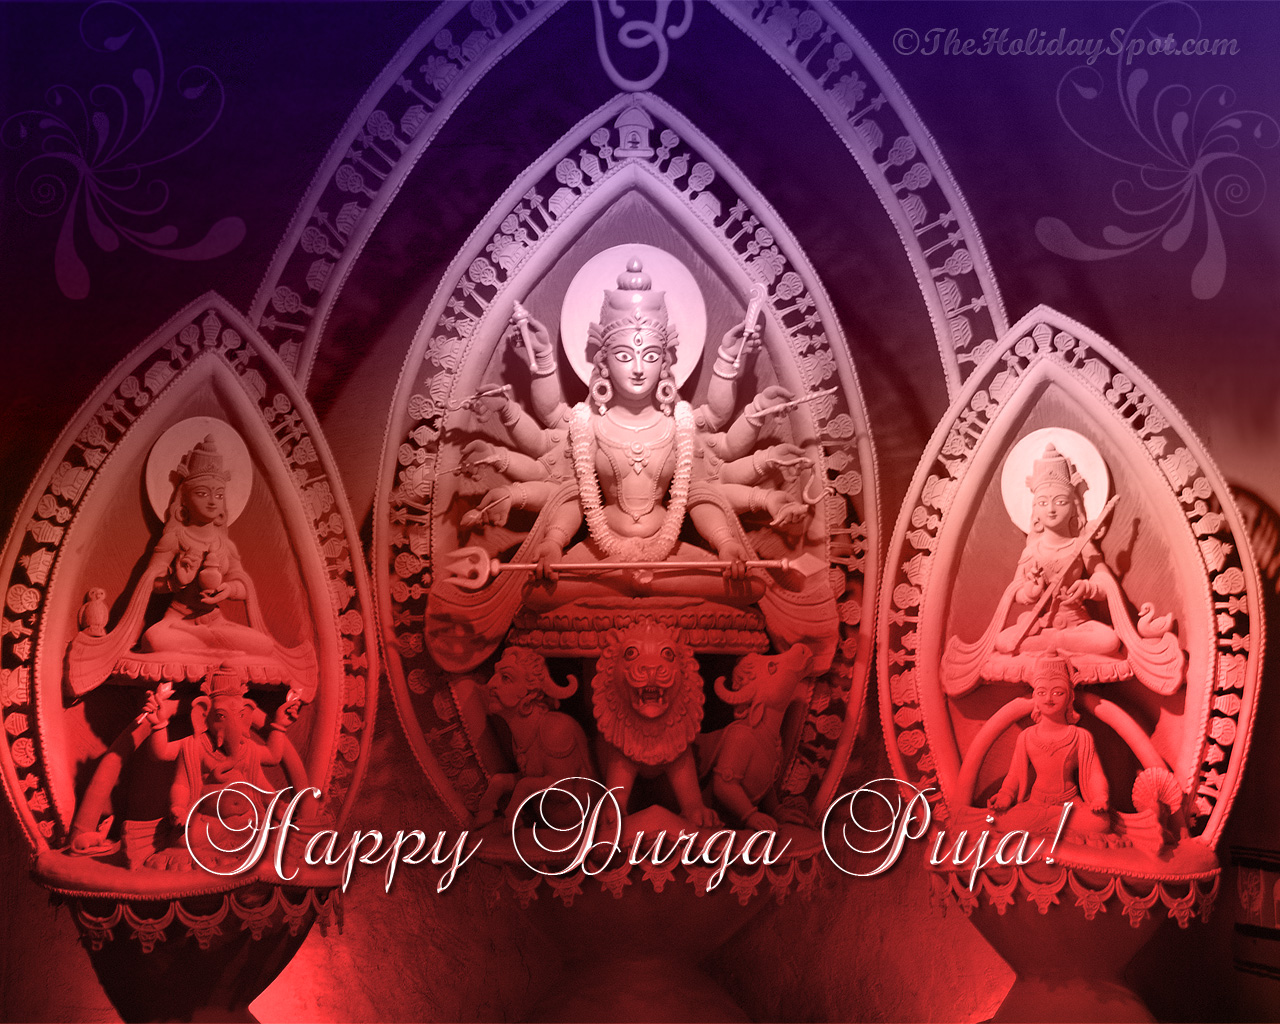 Wallpapers for durga puja its free download now hd sharodiya durga puja wallpaper altavistaventures Choice Image